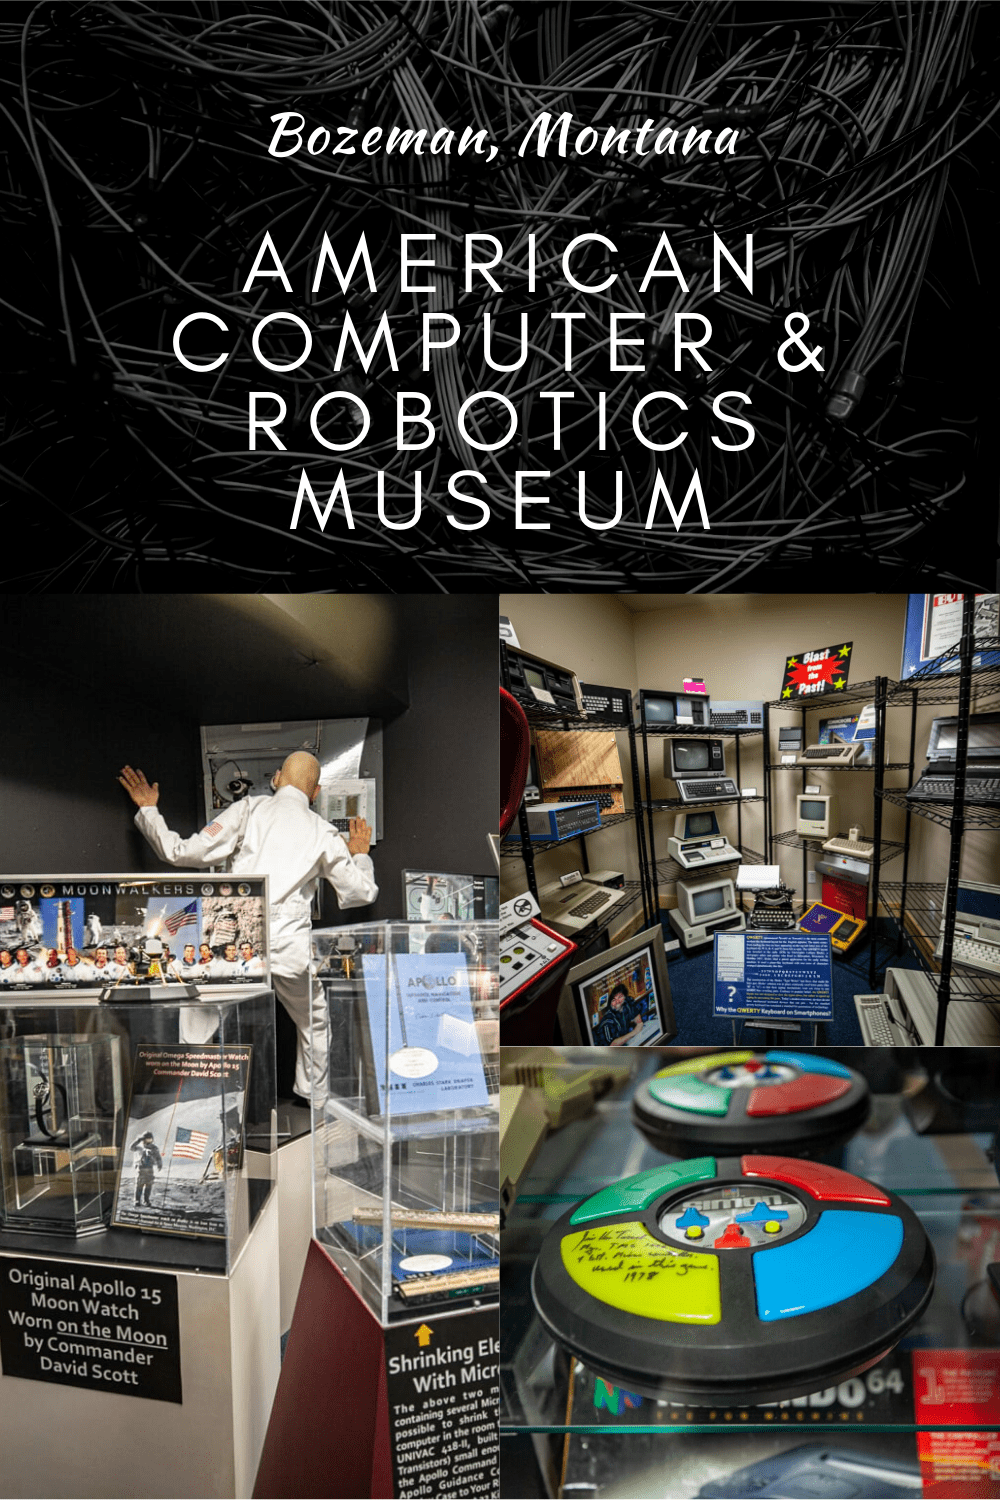 """The American Computer & Robotics Museum in Bozeman, Montana features a comprehensive history of the computer with """"4,000 years of humanity and technology."""" #MontanaRoadsideAttractions #MontanaRoadsideAttraction #RoadsideAttractions #RoadsideAttraction #RoadTrip #MontanaRoadTrip #MontanaRoadTripMap #MontanaRoadTripItinerary #MontanaRoadTripBucketLists #MontanaBucketList #MontanaRoadTripIdeas #MontanaWinterRoadTrip #MontanaRoadTripWithKids #MontanaRoadWithKids"""